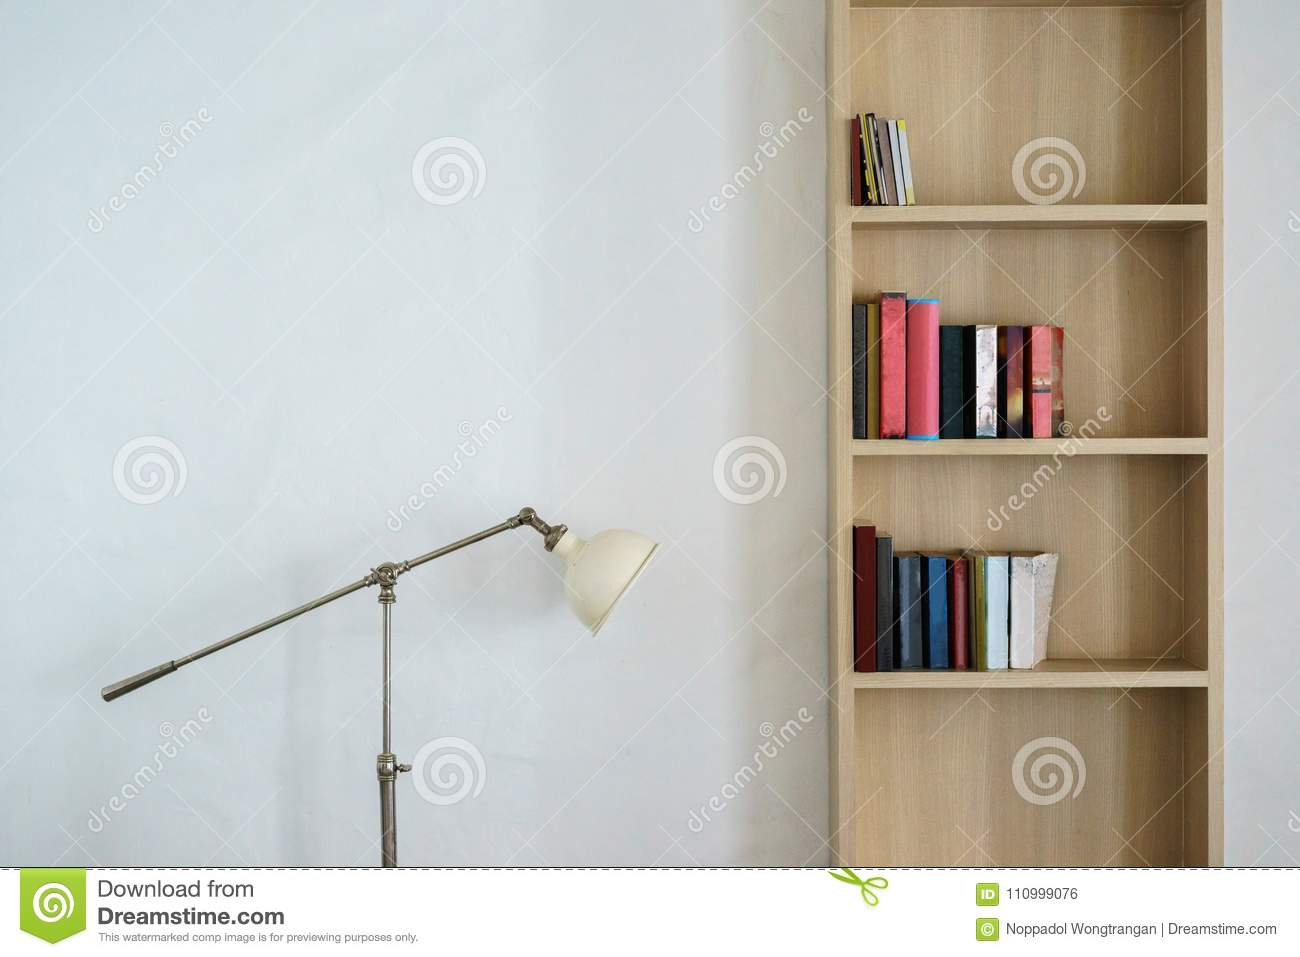 Metal Lamp Stand And Wooden Bookshelf With Books